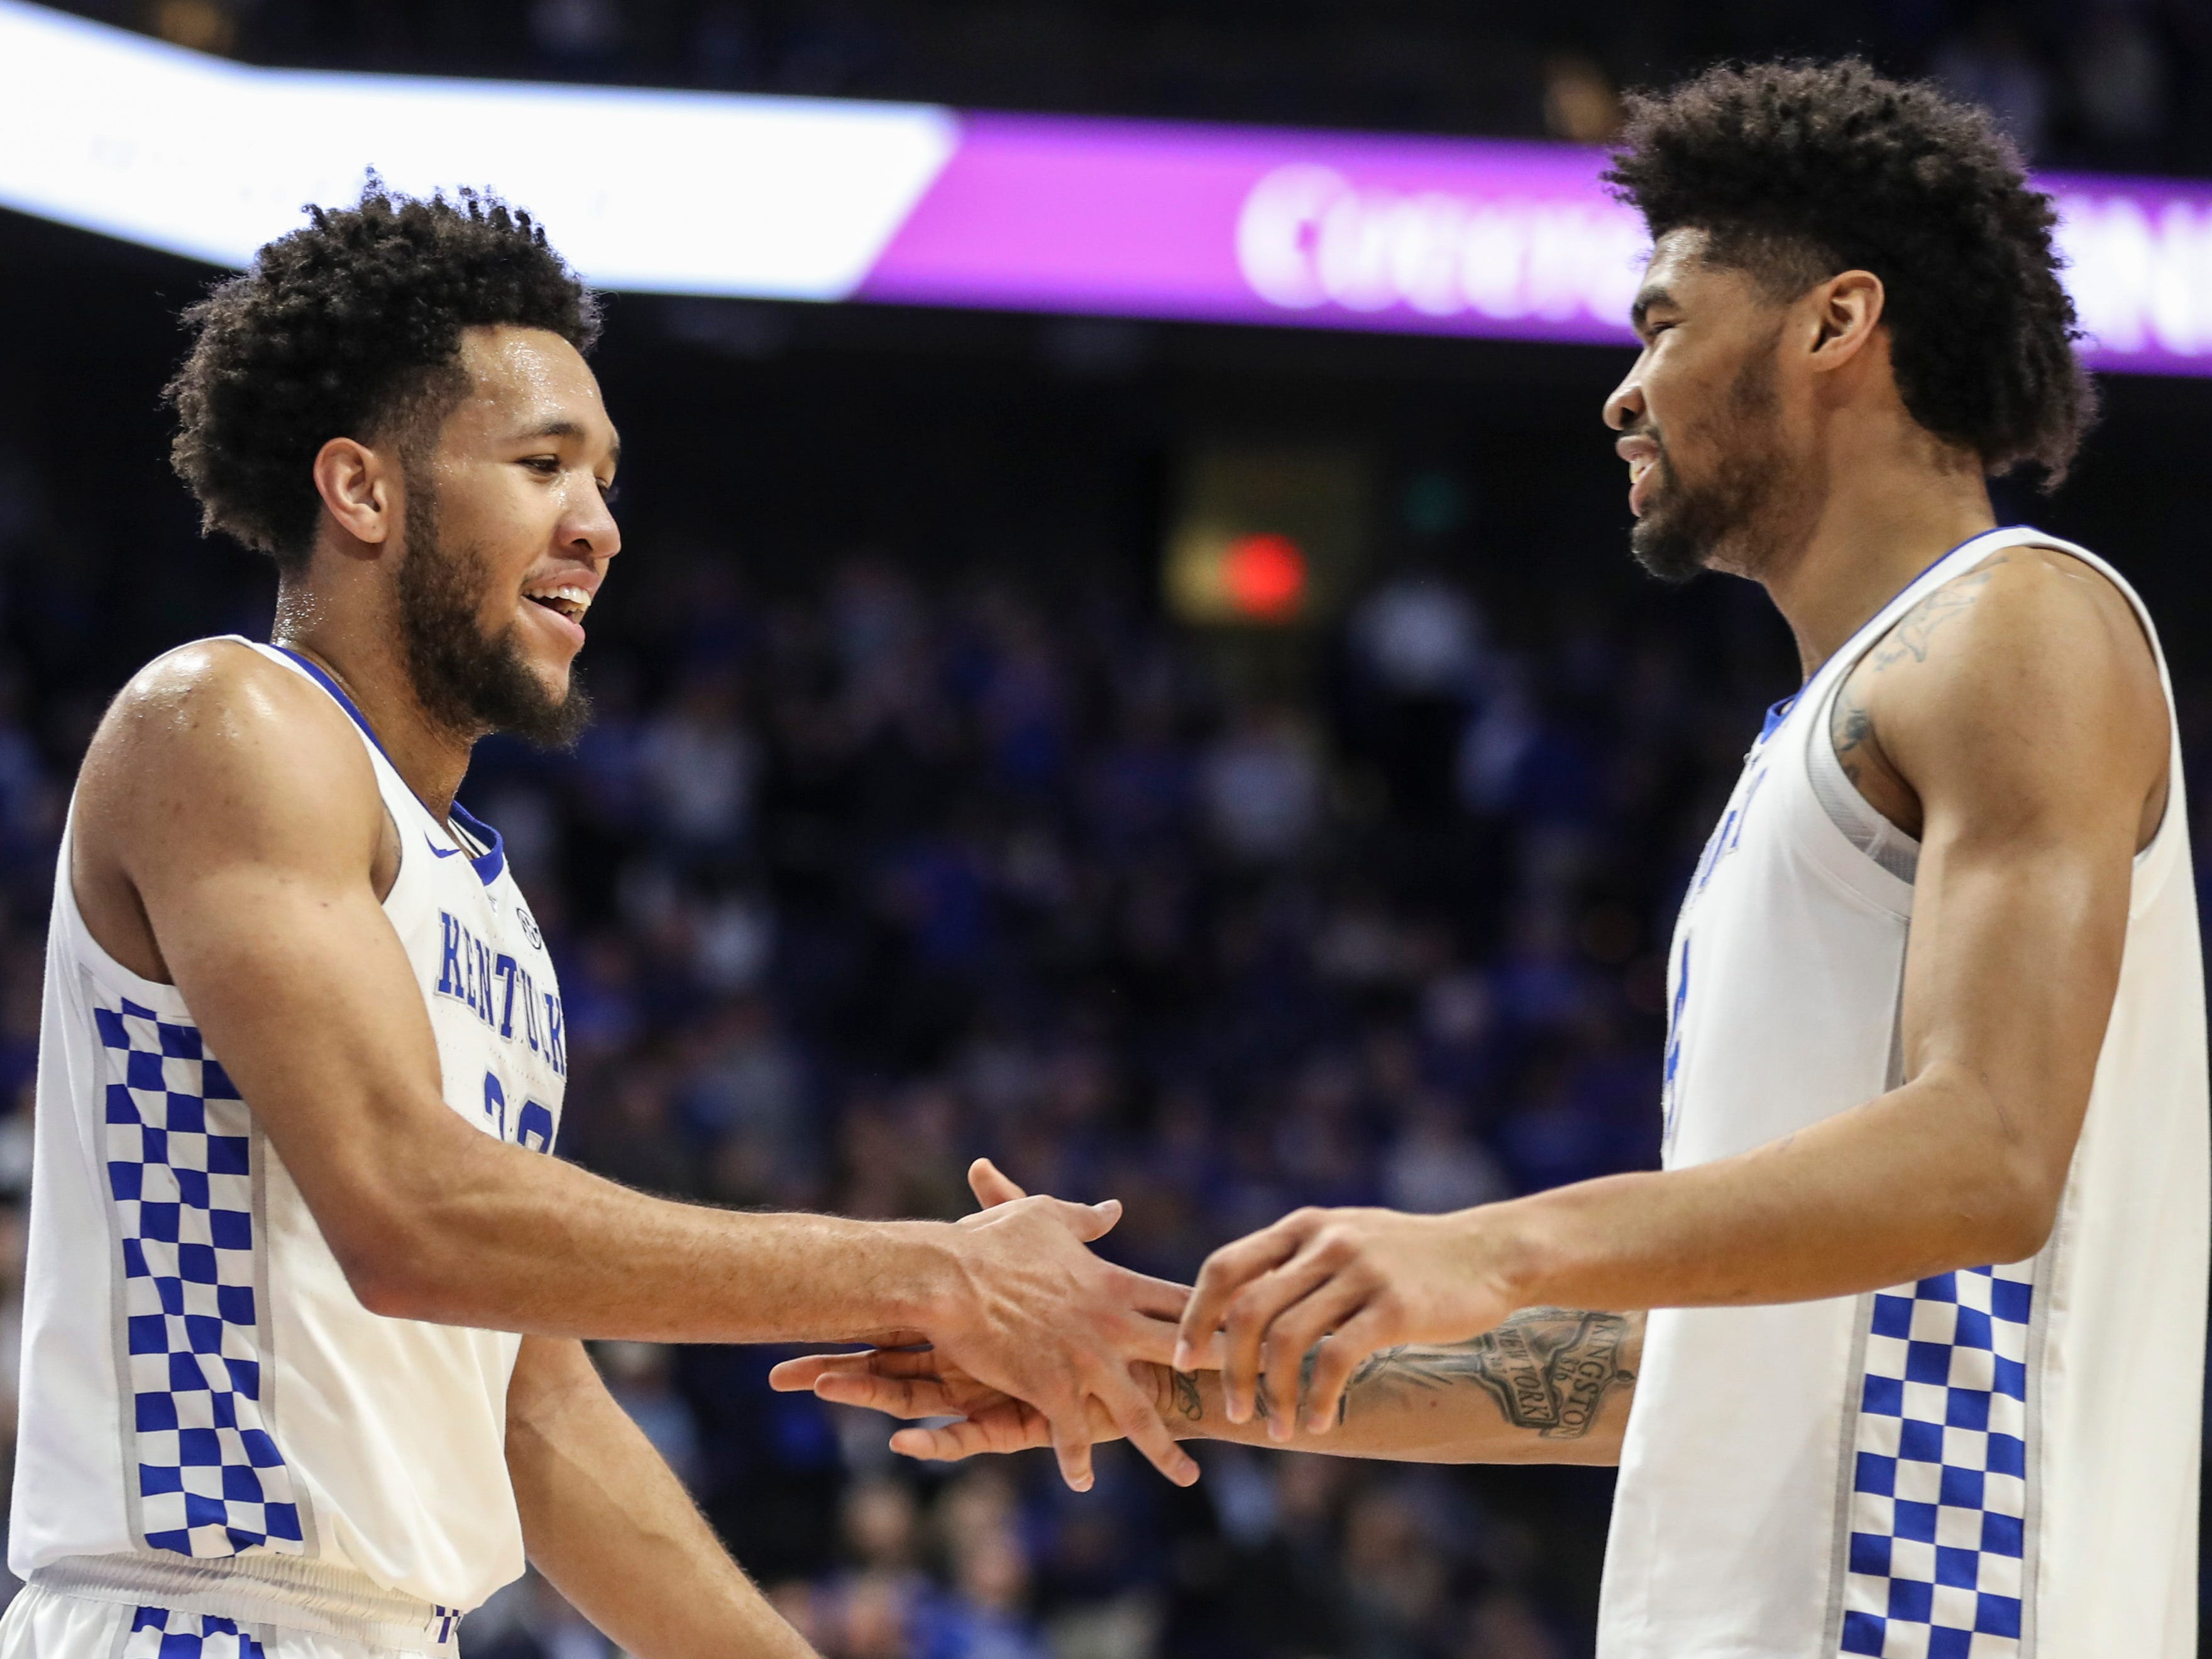 'Ej was really, really good,' said UK coach John Calipari after the Wildcats beat South Carolina. 'Double-double, active, playing hard, blocking shots. He's starting to come around. This was a great game for him to prove it against a really physical team.' EJ Montgomery, left, gets congratulated by teammate Nick Richards at the end of the South Carolina game. Feb. 5, 2019